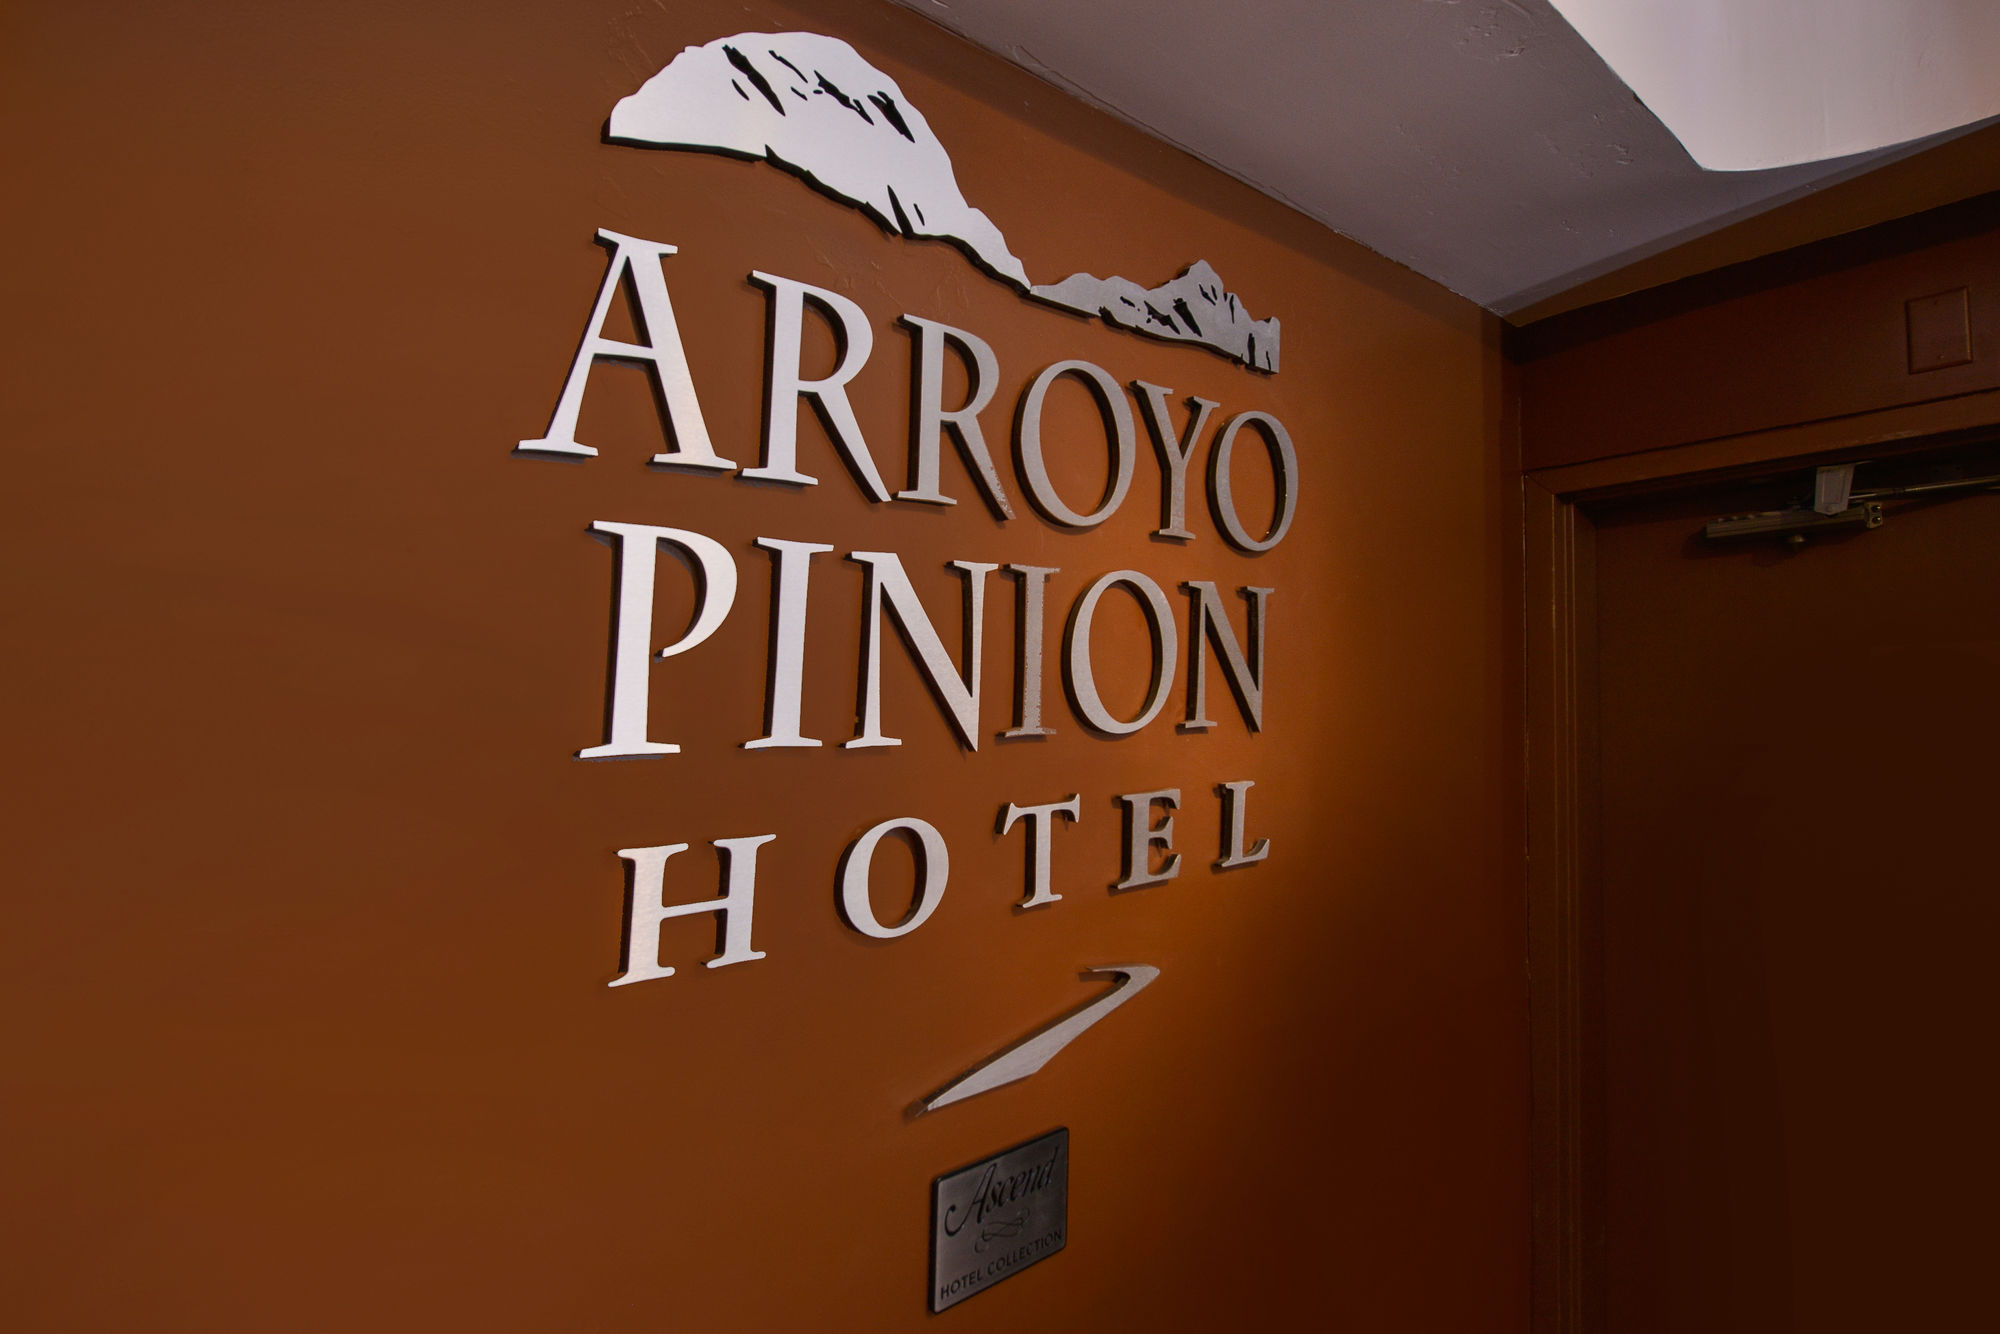 Arroyo Pinion Hotel, An Ascend Collection Member